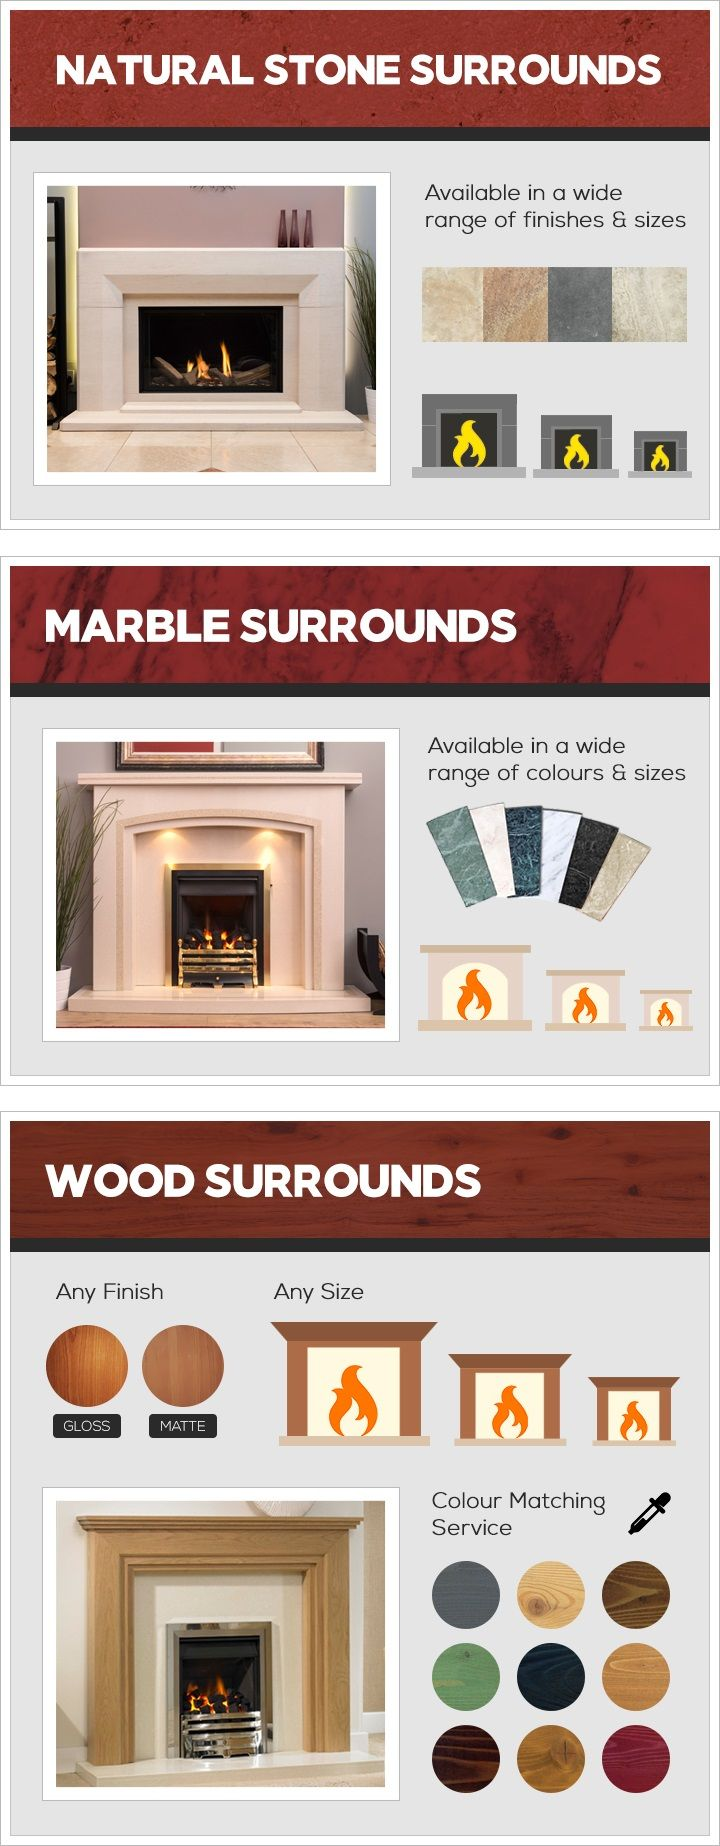 15 best college teaching tips images on pinterest gym learning bespoke fireplace surrounds graphics natural stone surrounds marble surrounds wood surrounds fandeluxe Images